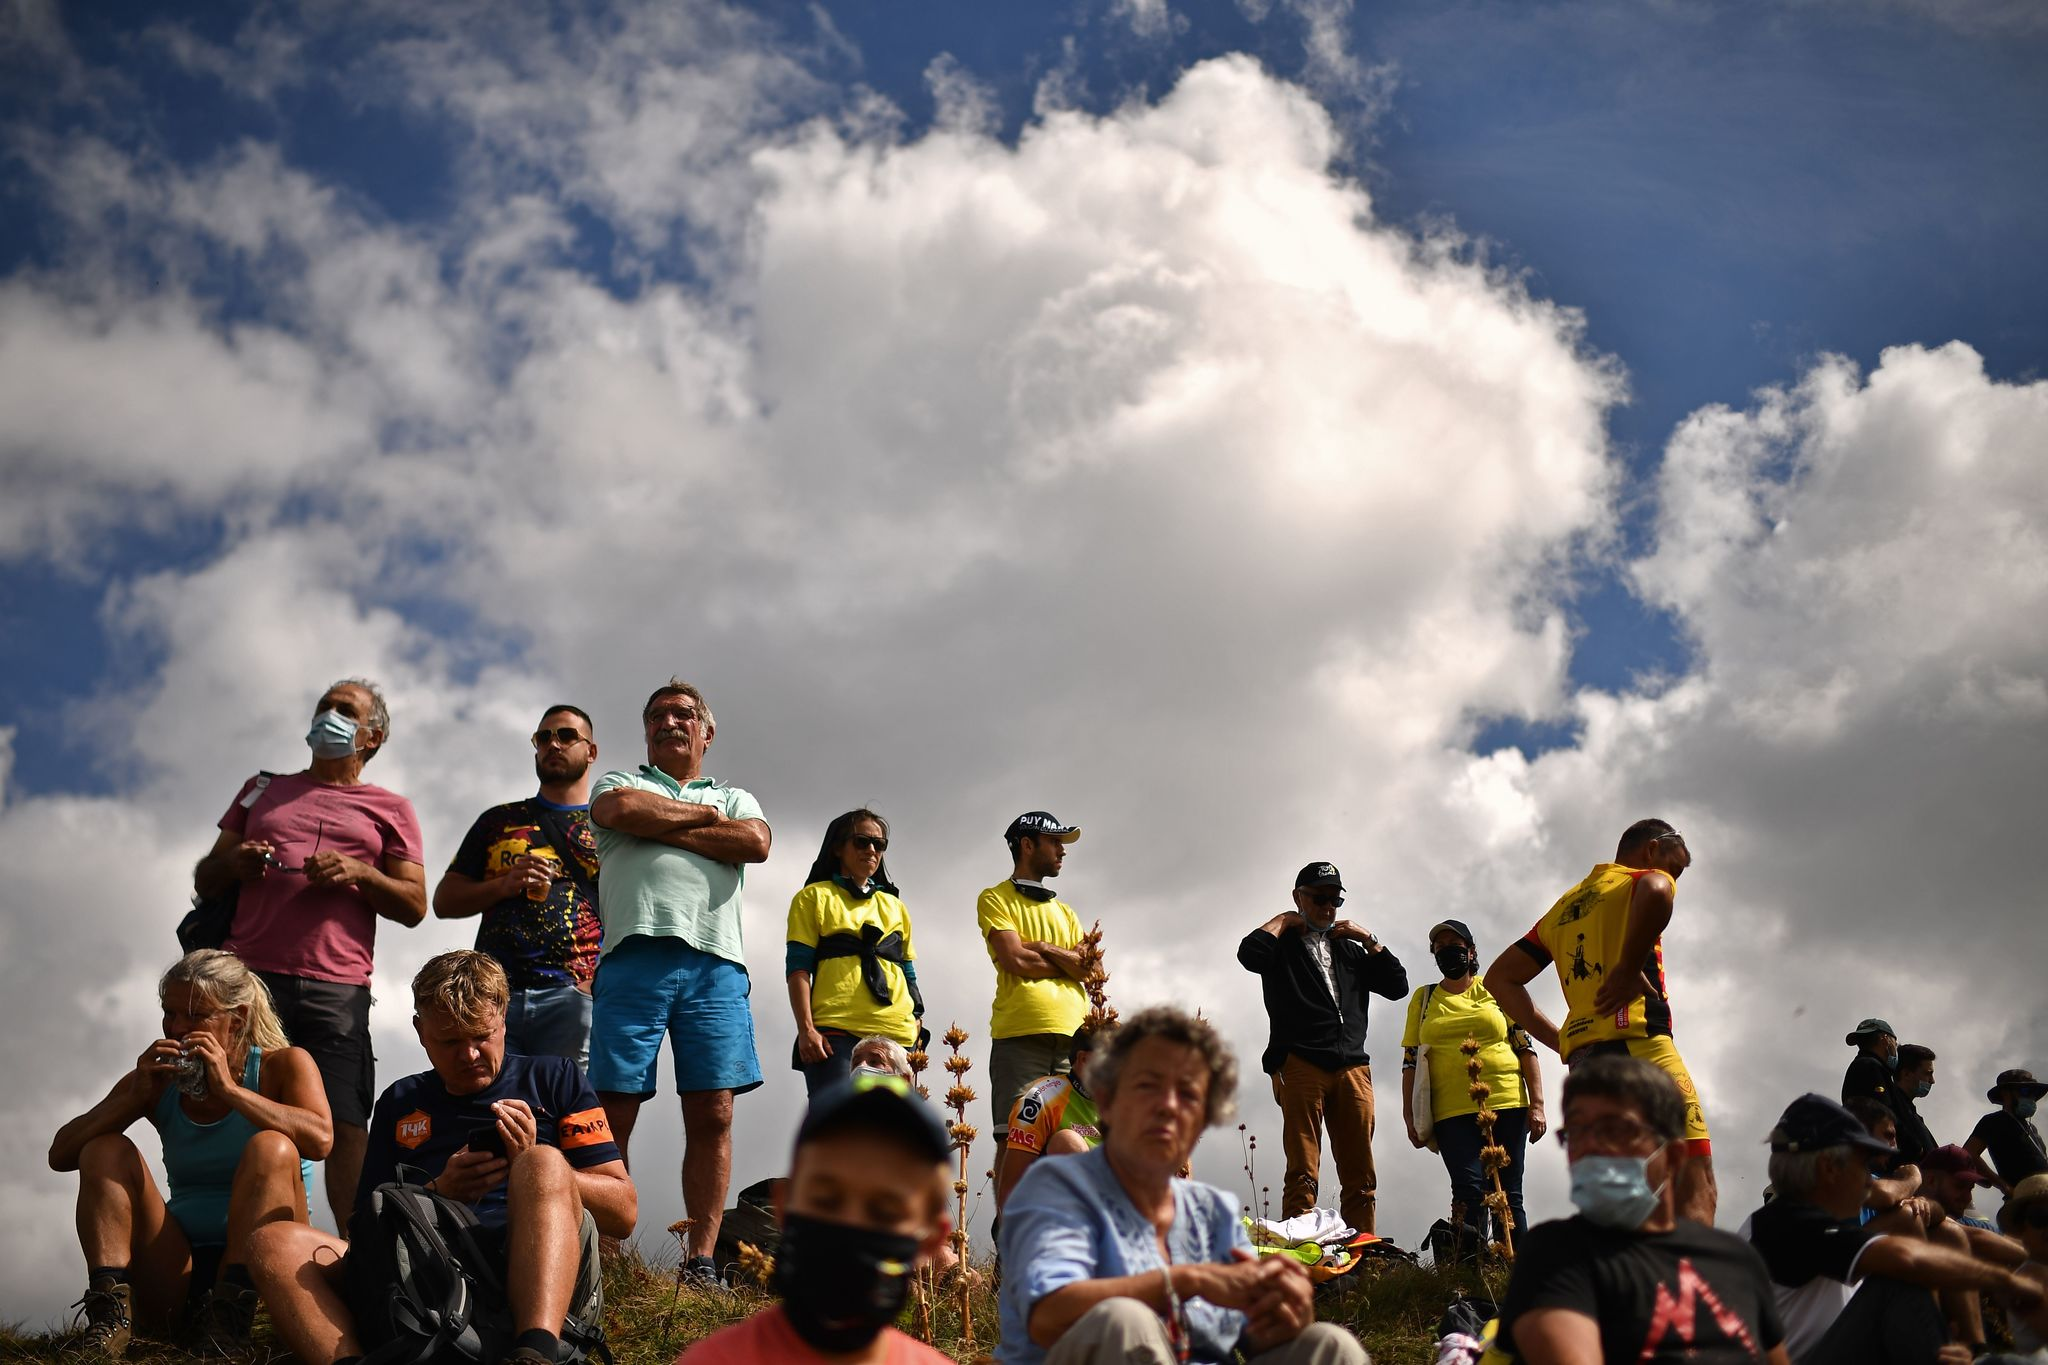 Spectators wait for the riders near the finish line in Puy Mary during the 13th stage of the 107th edition of the lt;HIT gt;Tour lt;/HIT gt; de France cycling race, 191 km between Chatel-Guyon and Puy Mary, on September 11, 2020. (Photo by ANNE-CHRISTINE POUJOULAT / POOL / AFP)